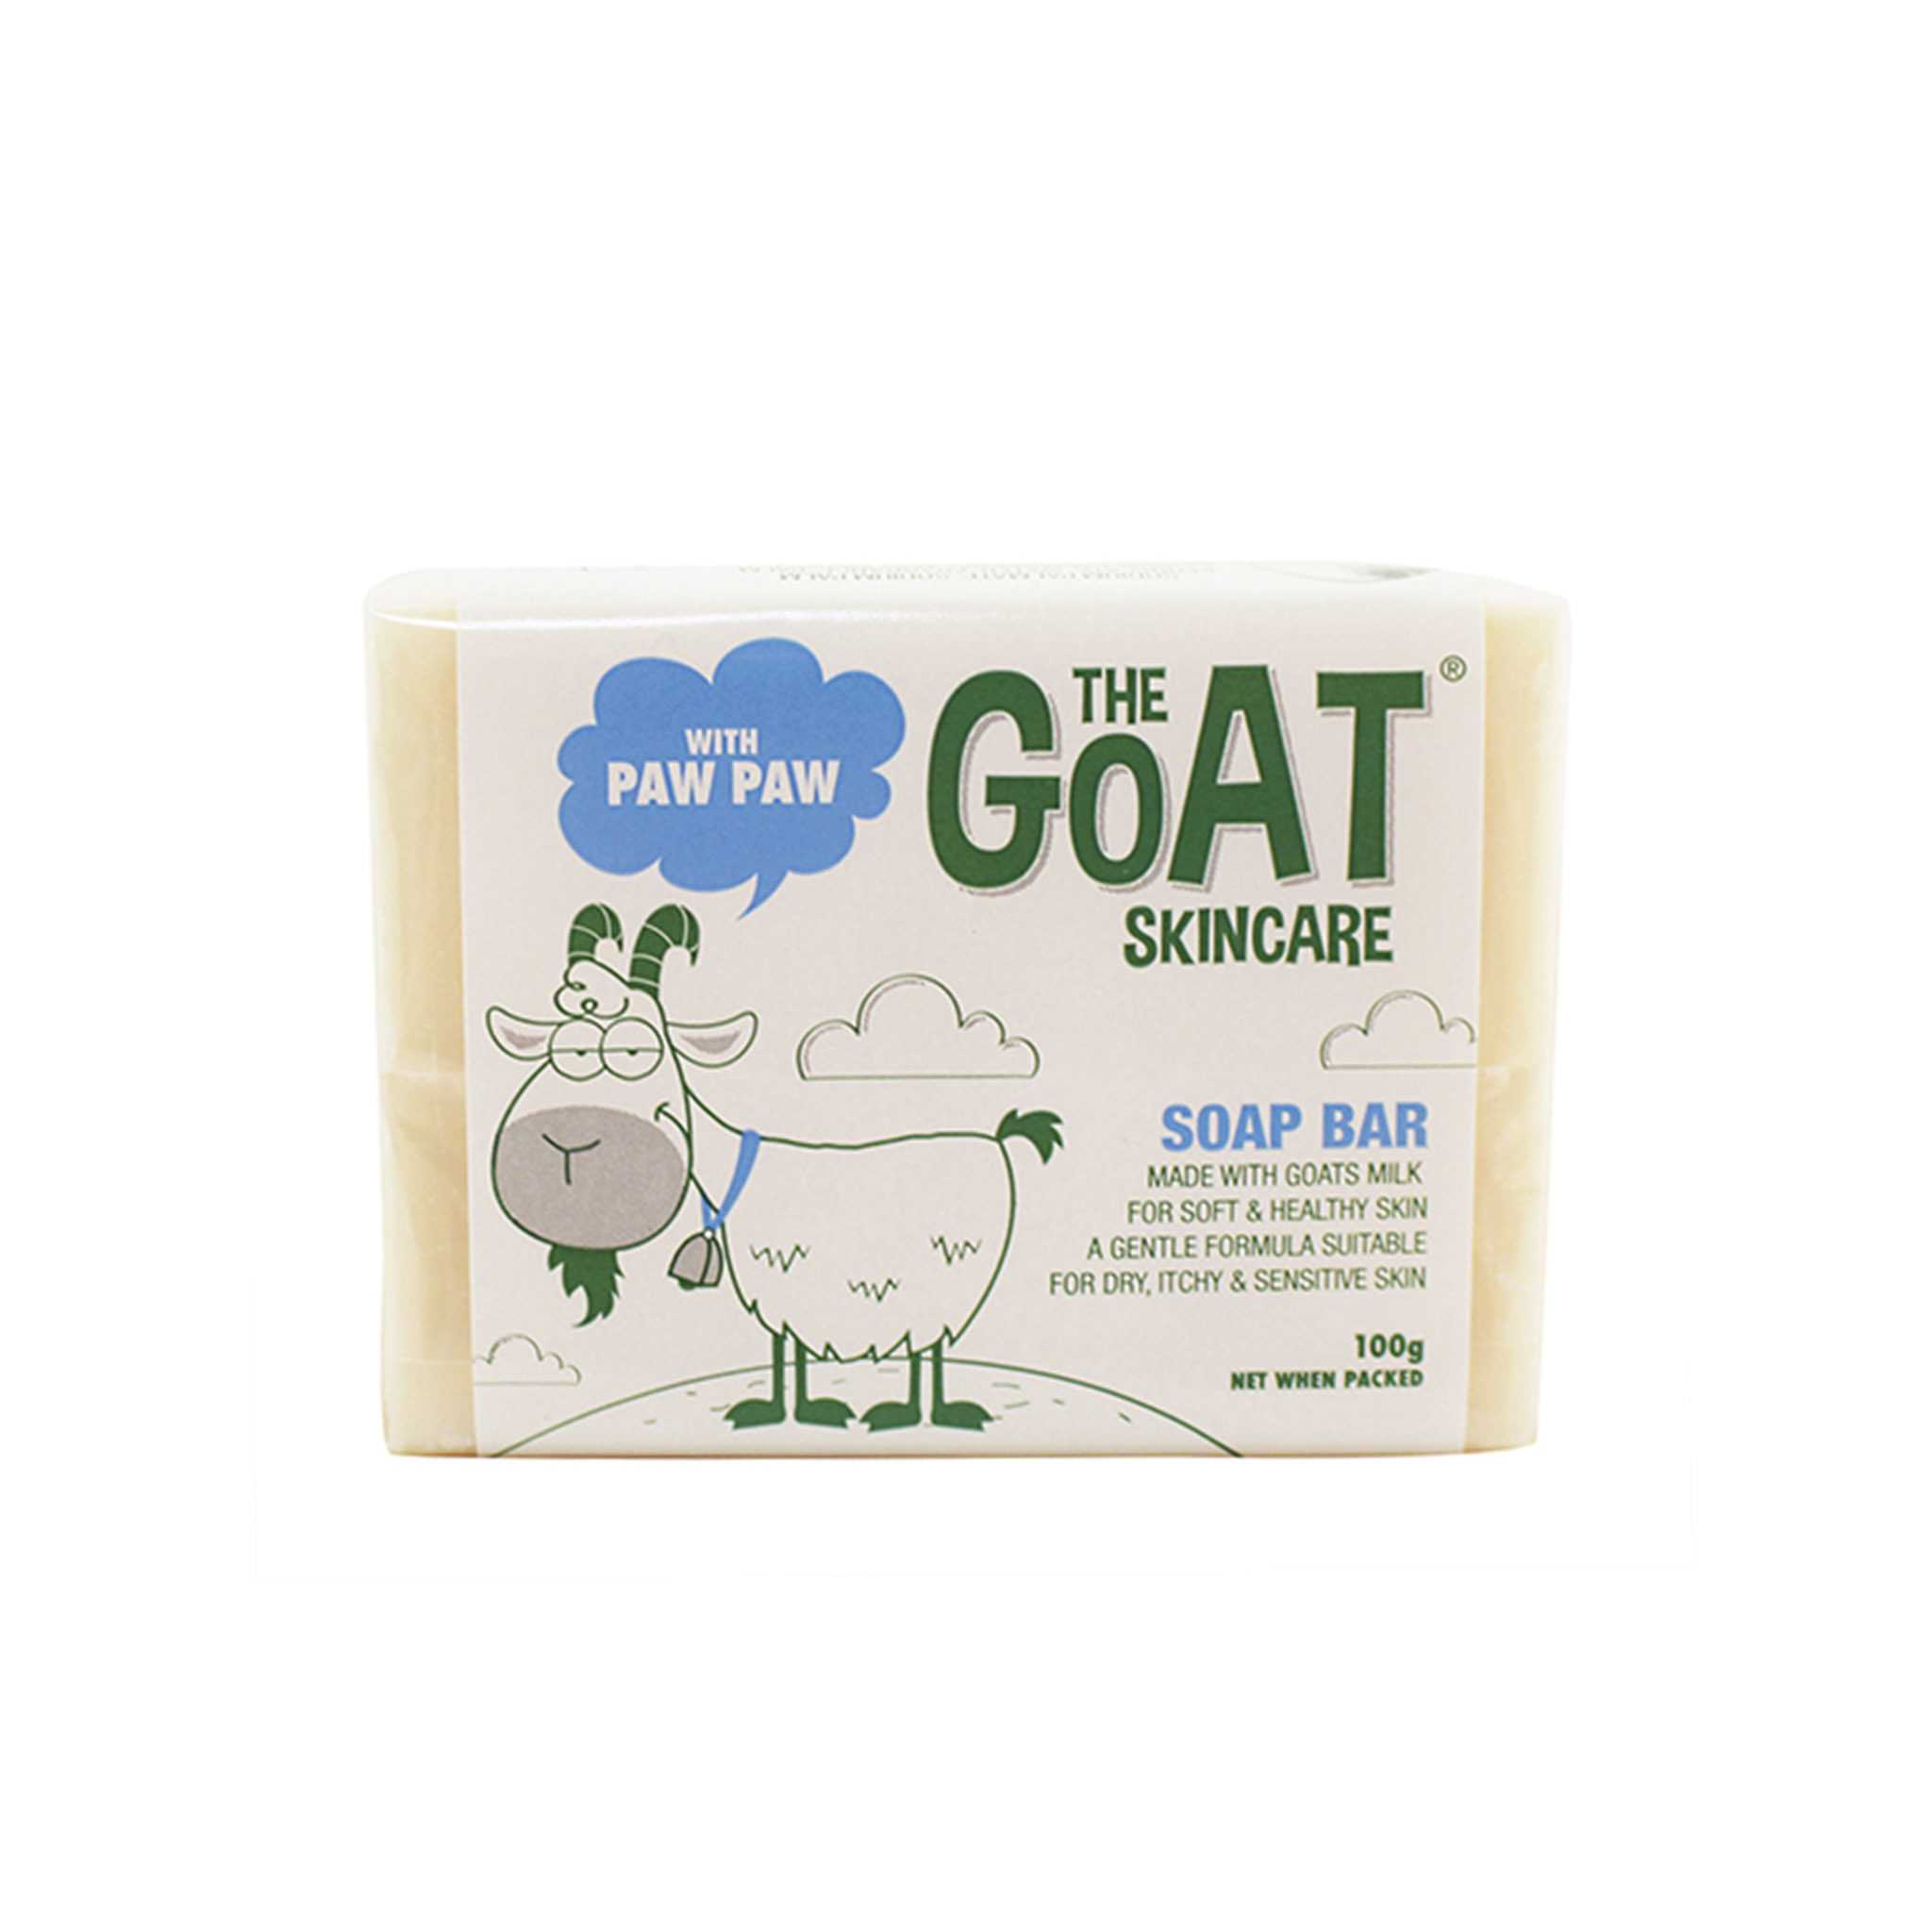 The Goat Skincare Soap Bar 羊奶木瓜香皂